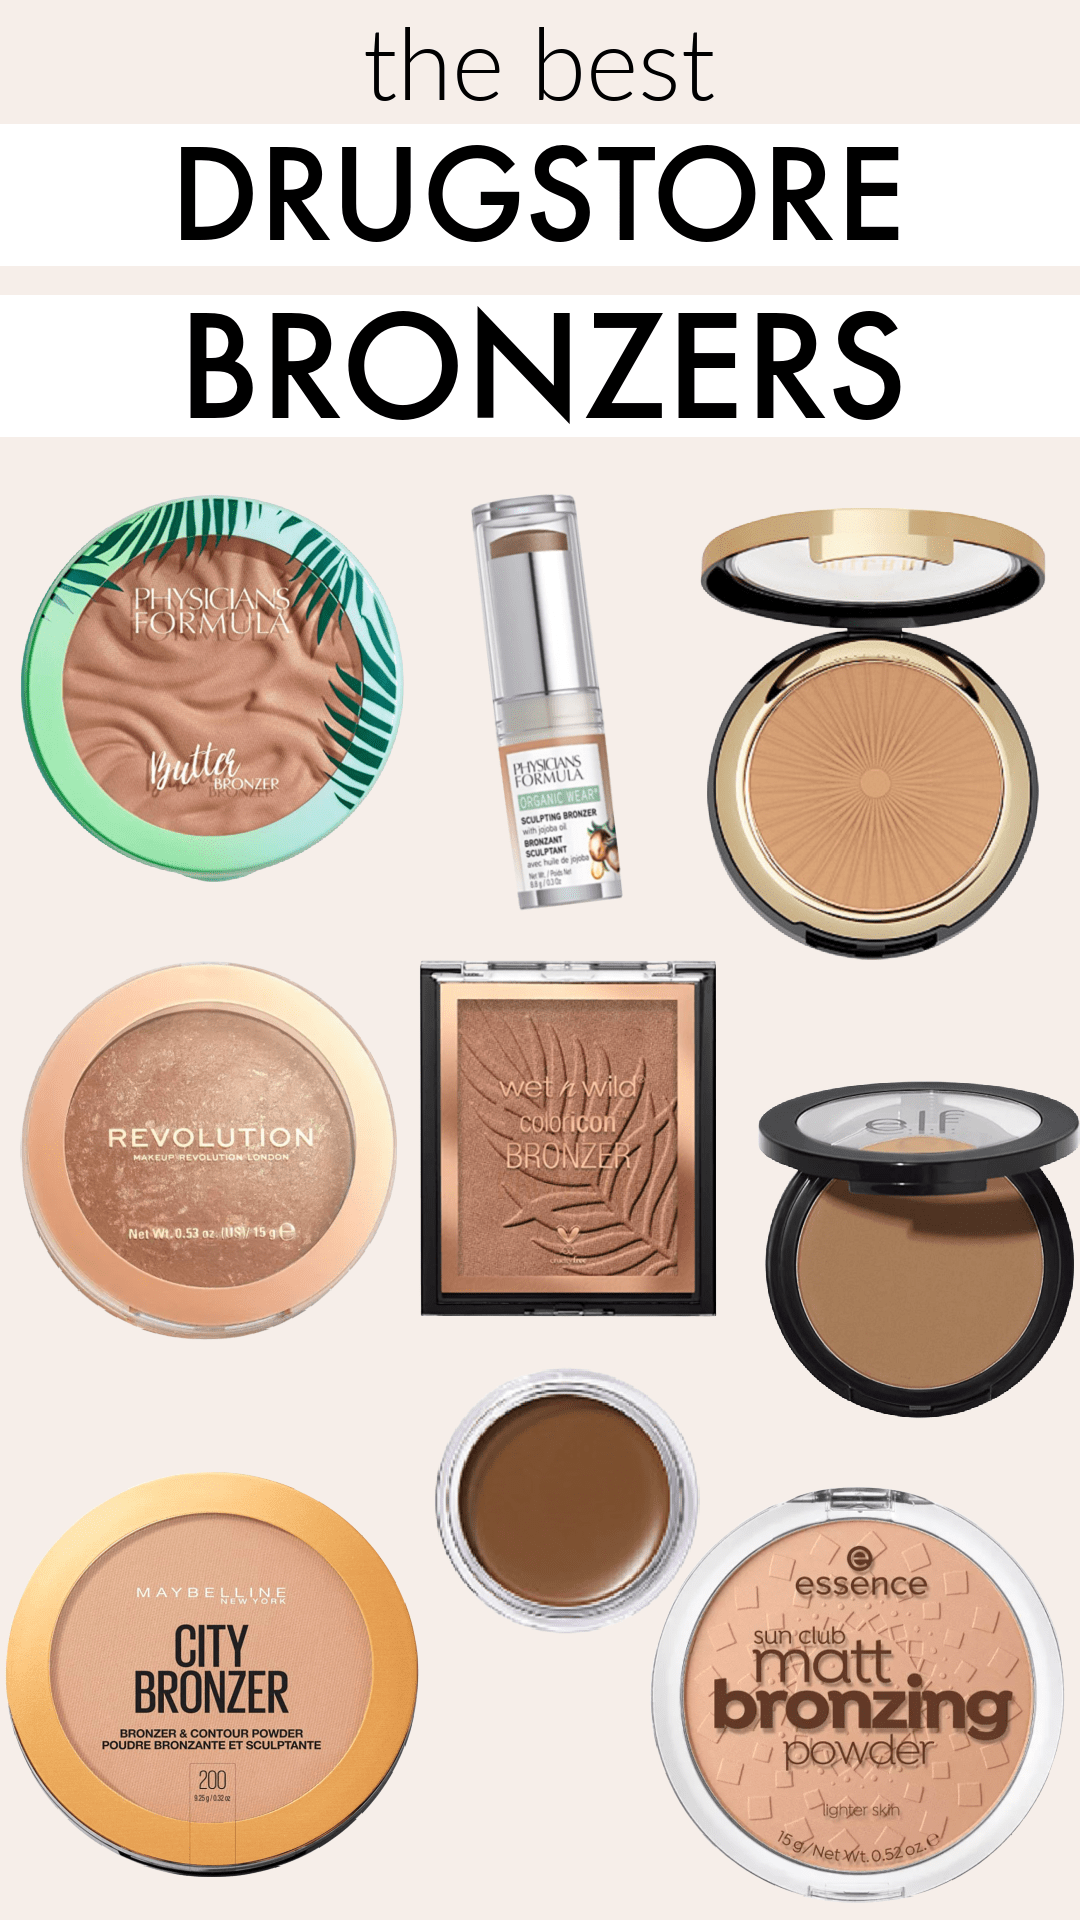 The best drugstore bronzers - cream, powder, shimmer, and matte for all skin tones and skin types